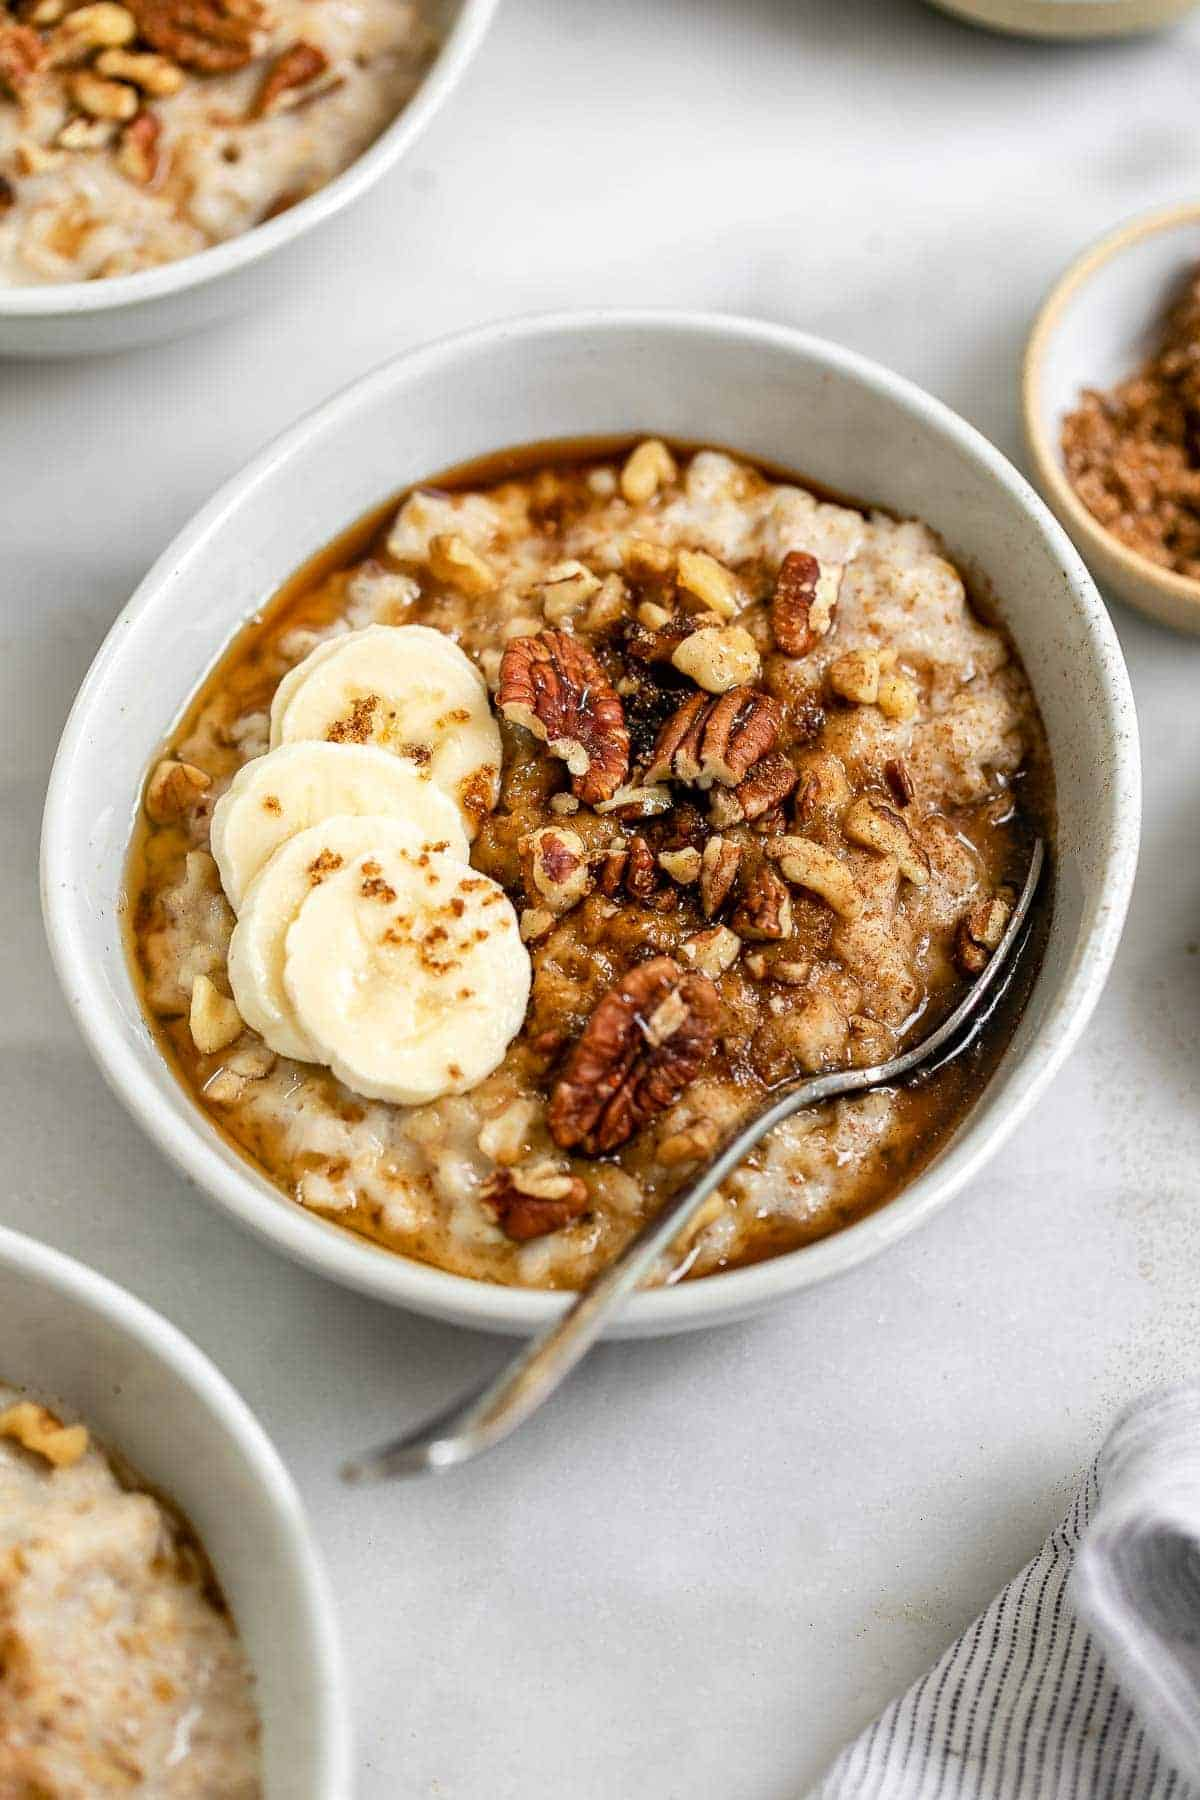 Brown sugar oatmeal in a bowl with a spoon on the side.